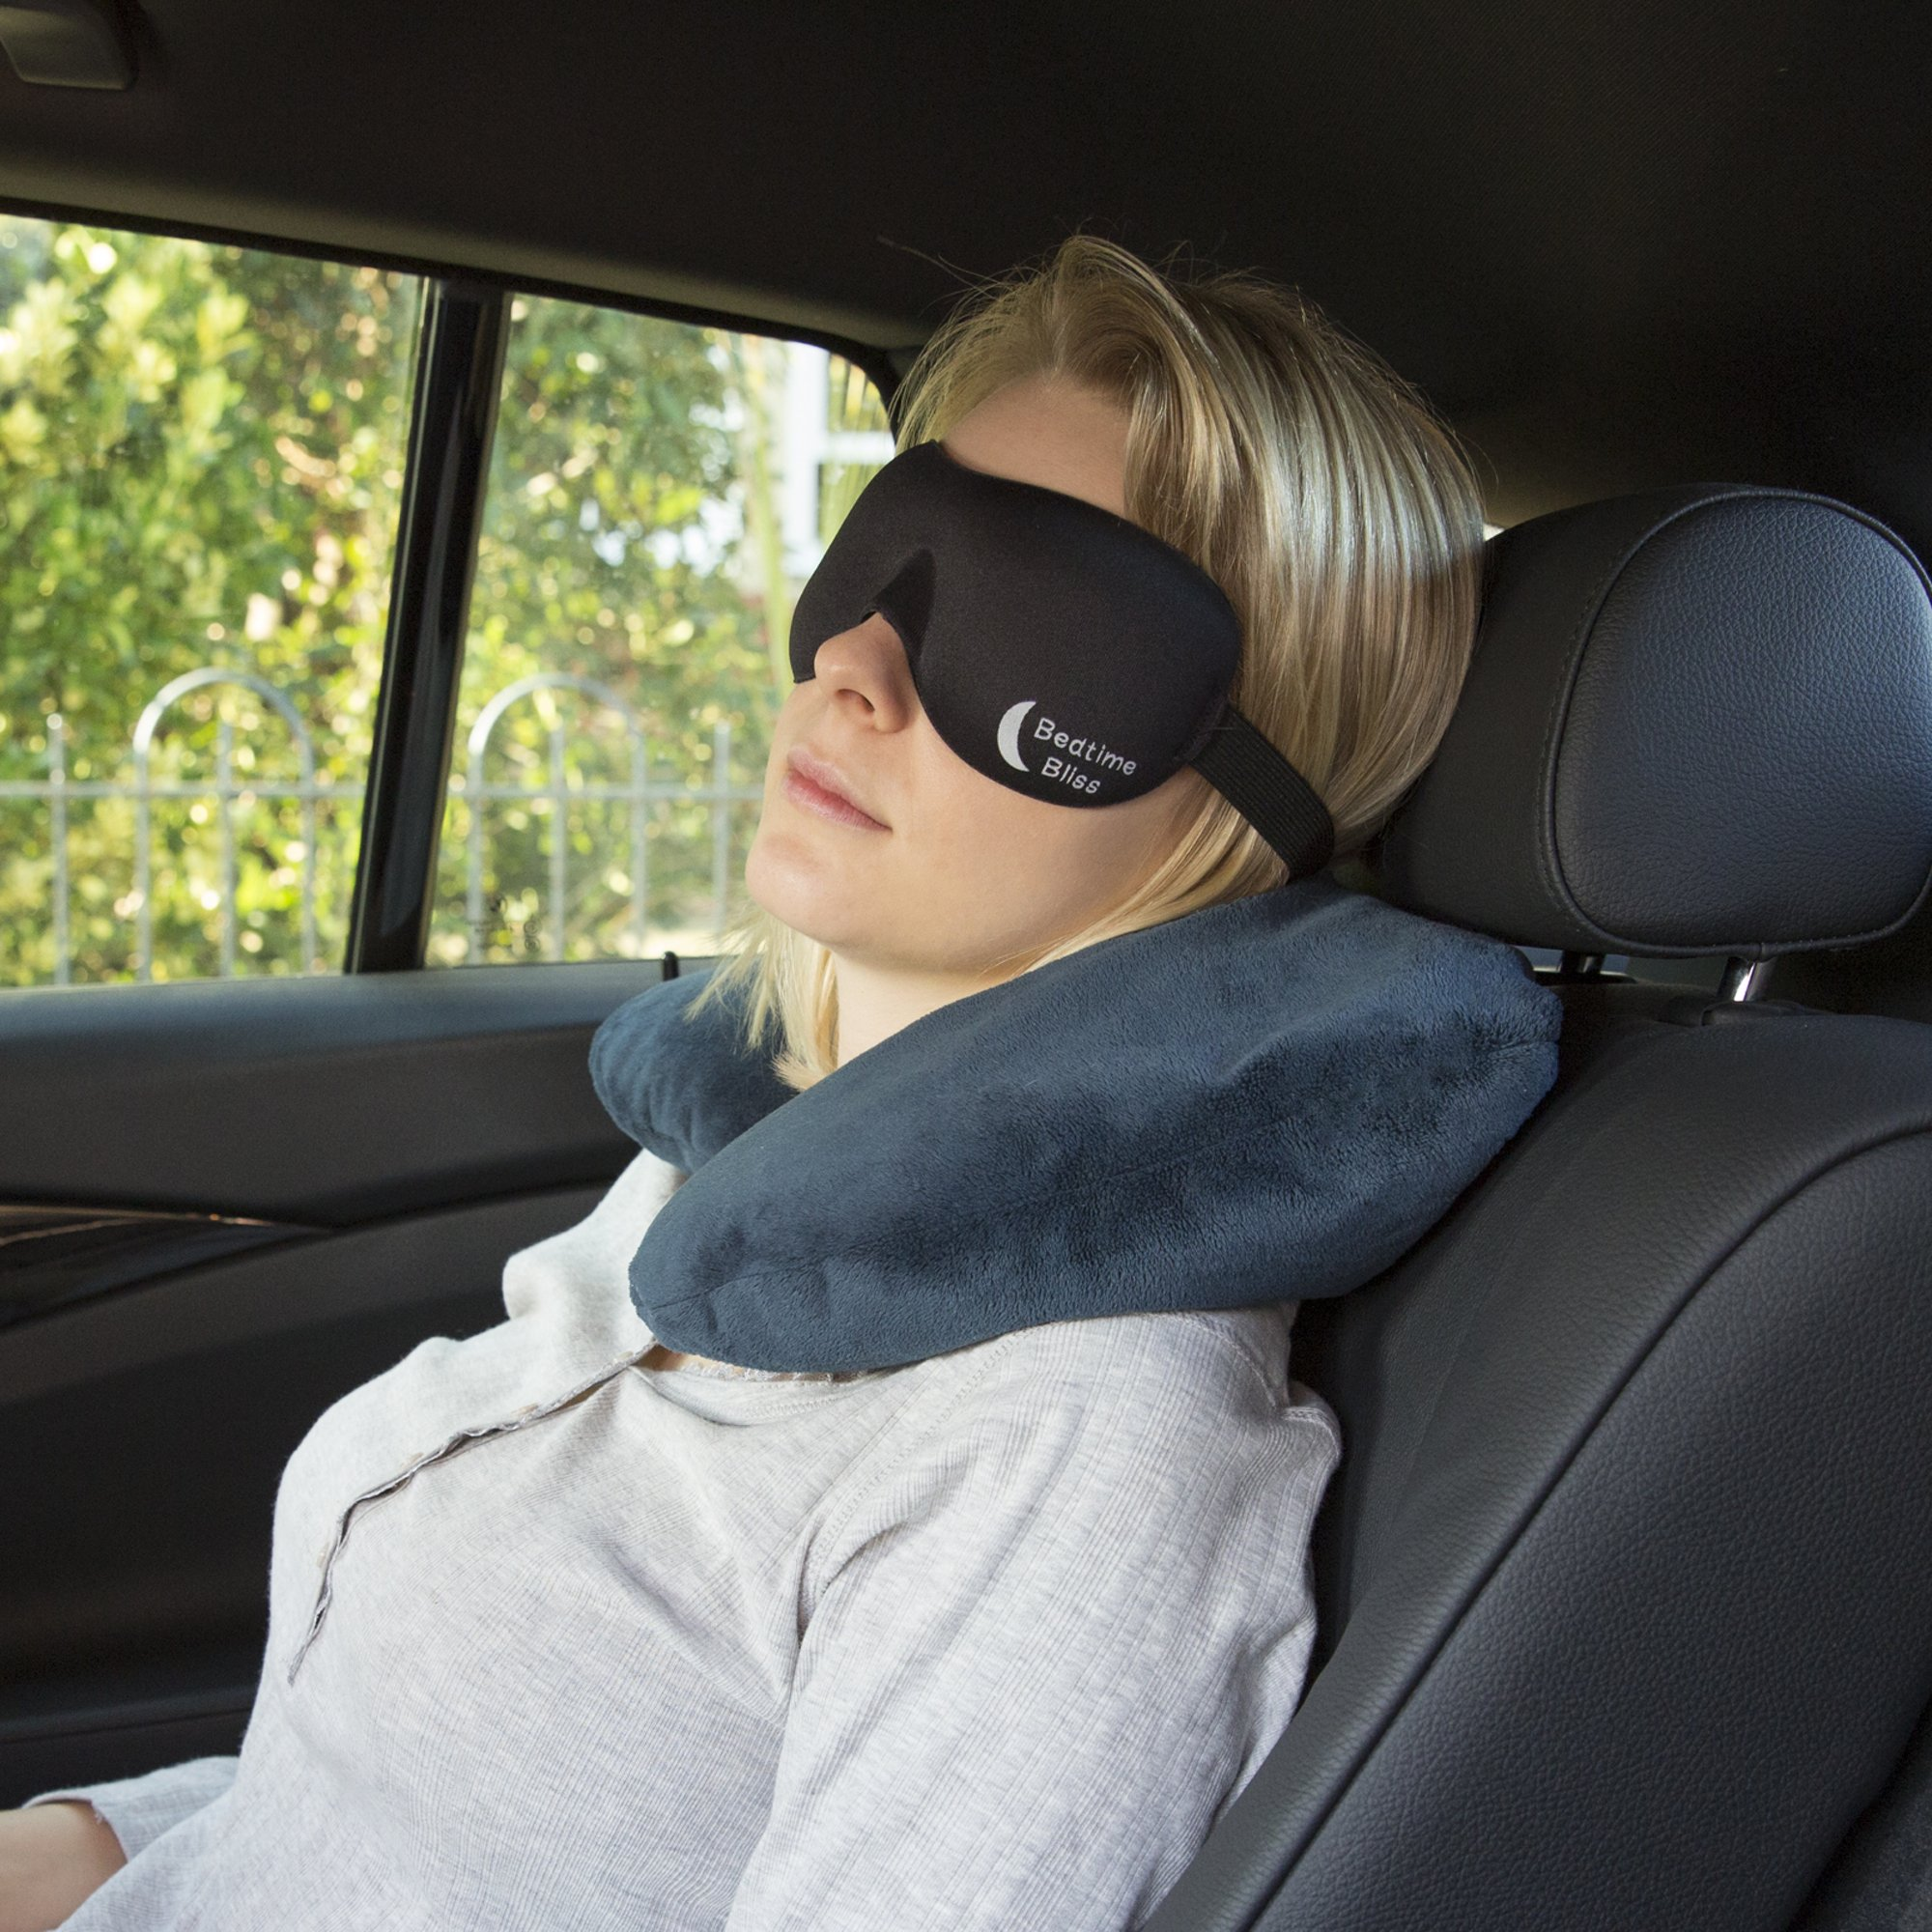 Sleep Mask by Bedtime Bliss® - Contoured & Comfortable With Moldex® Ear Plug Set. Includes Carry Pouch for Eye Mask and Ear Plugs - Great for Travel, Shift Work & Meditation (Black) by Bedtime Bliss (Image #7)